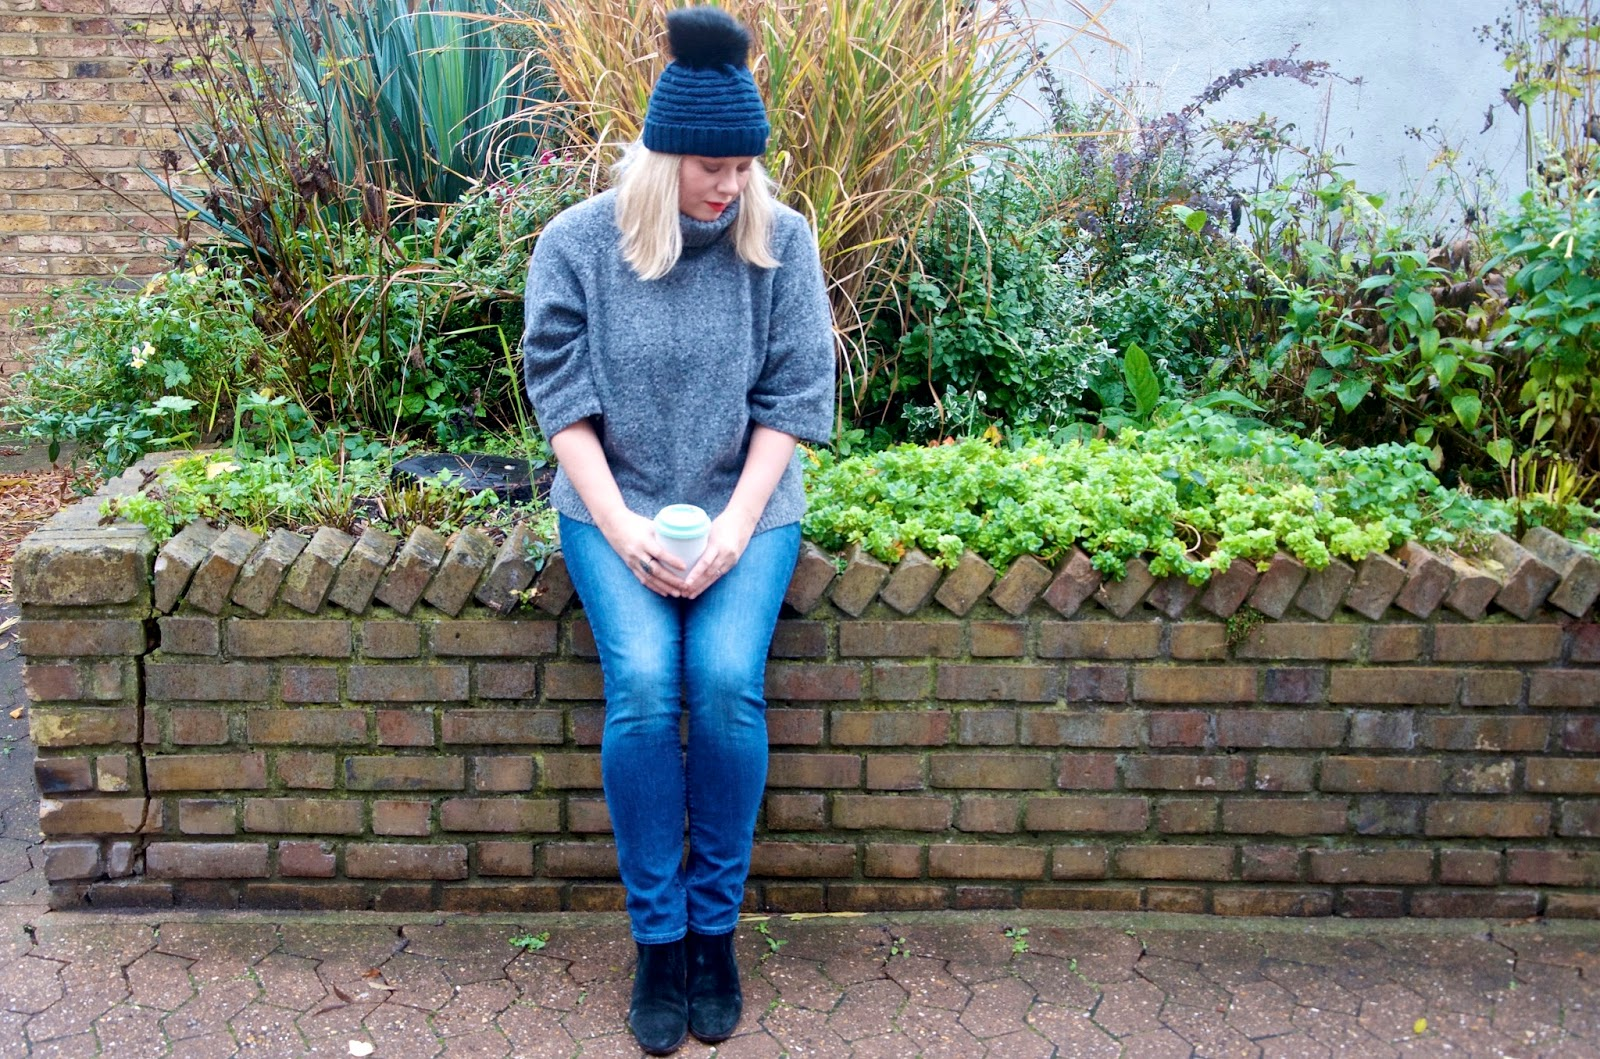 Bobble Hat, grey turtleneck sweater and jeans